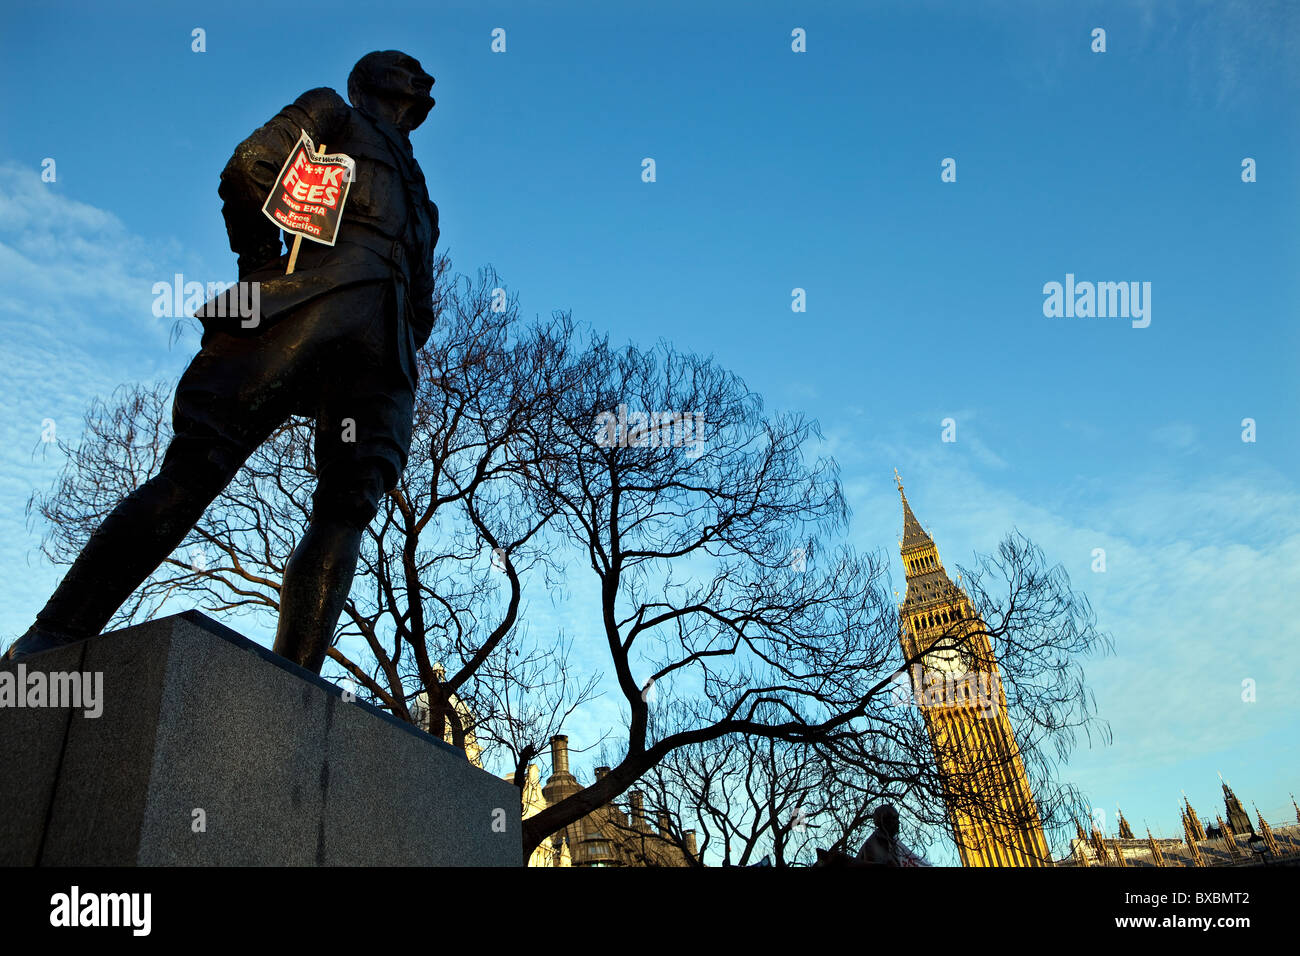 Socialist Worker tuition fee protest placard on the statue of Jan Christiaan Smuts in Parliament Square, London - Stock Image